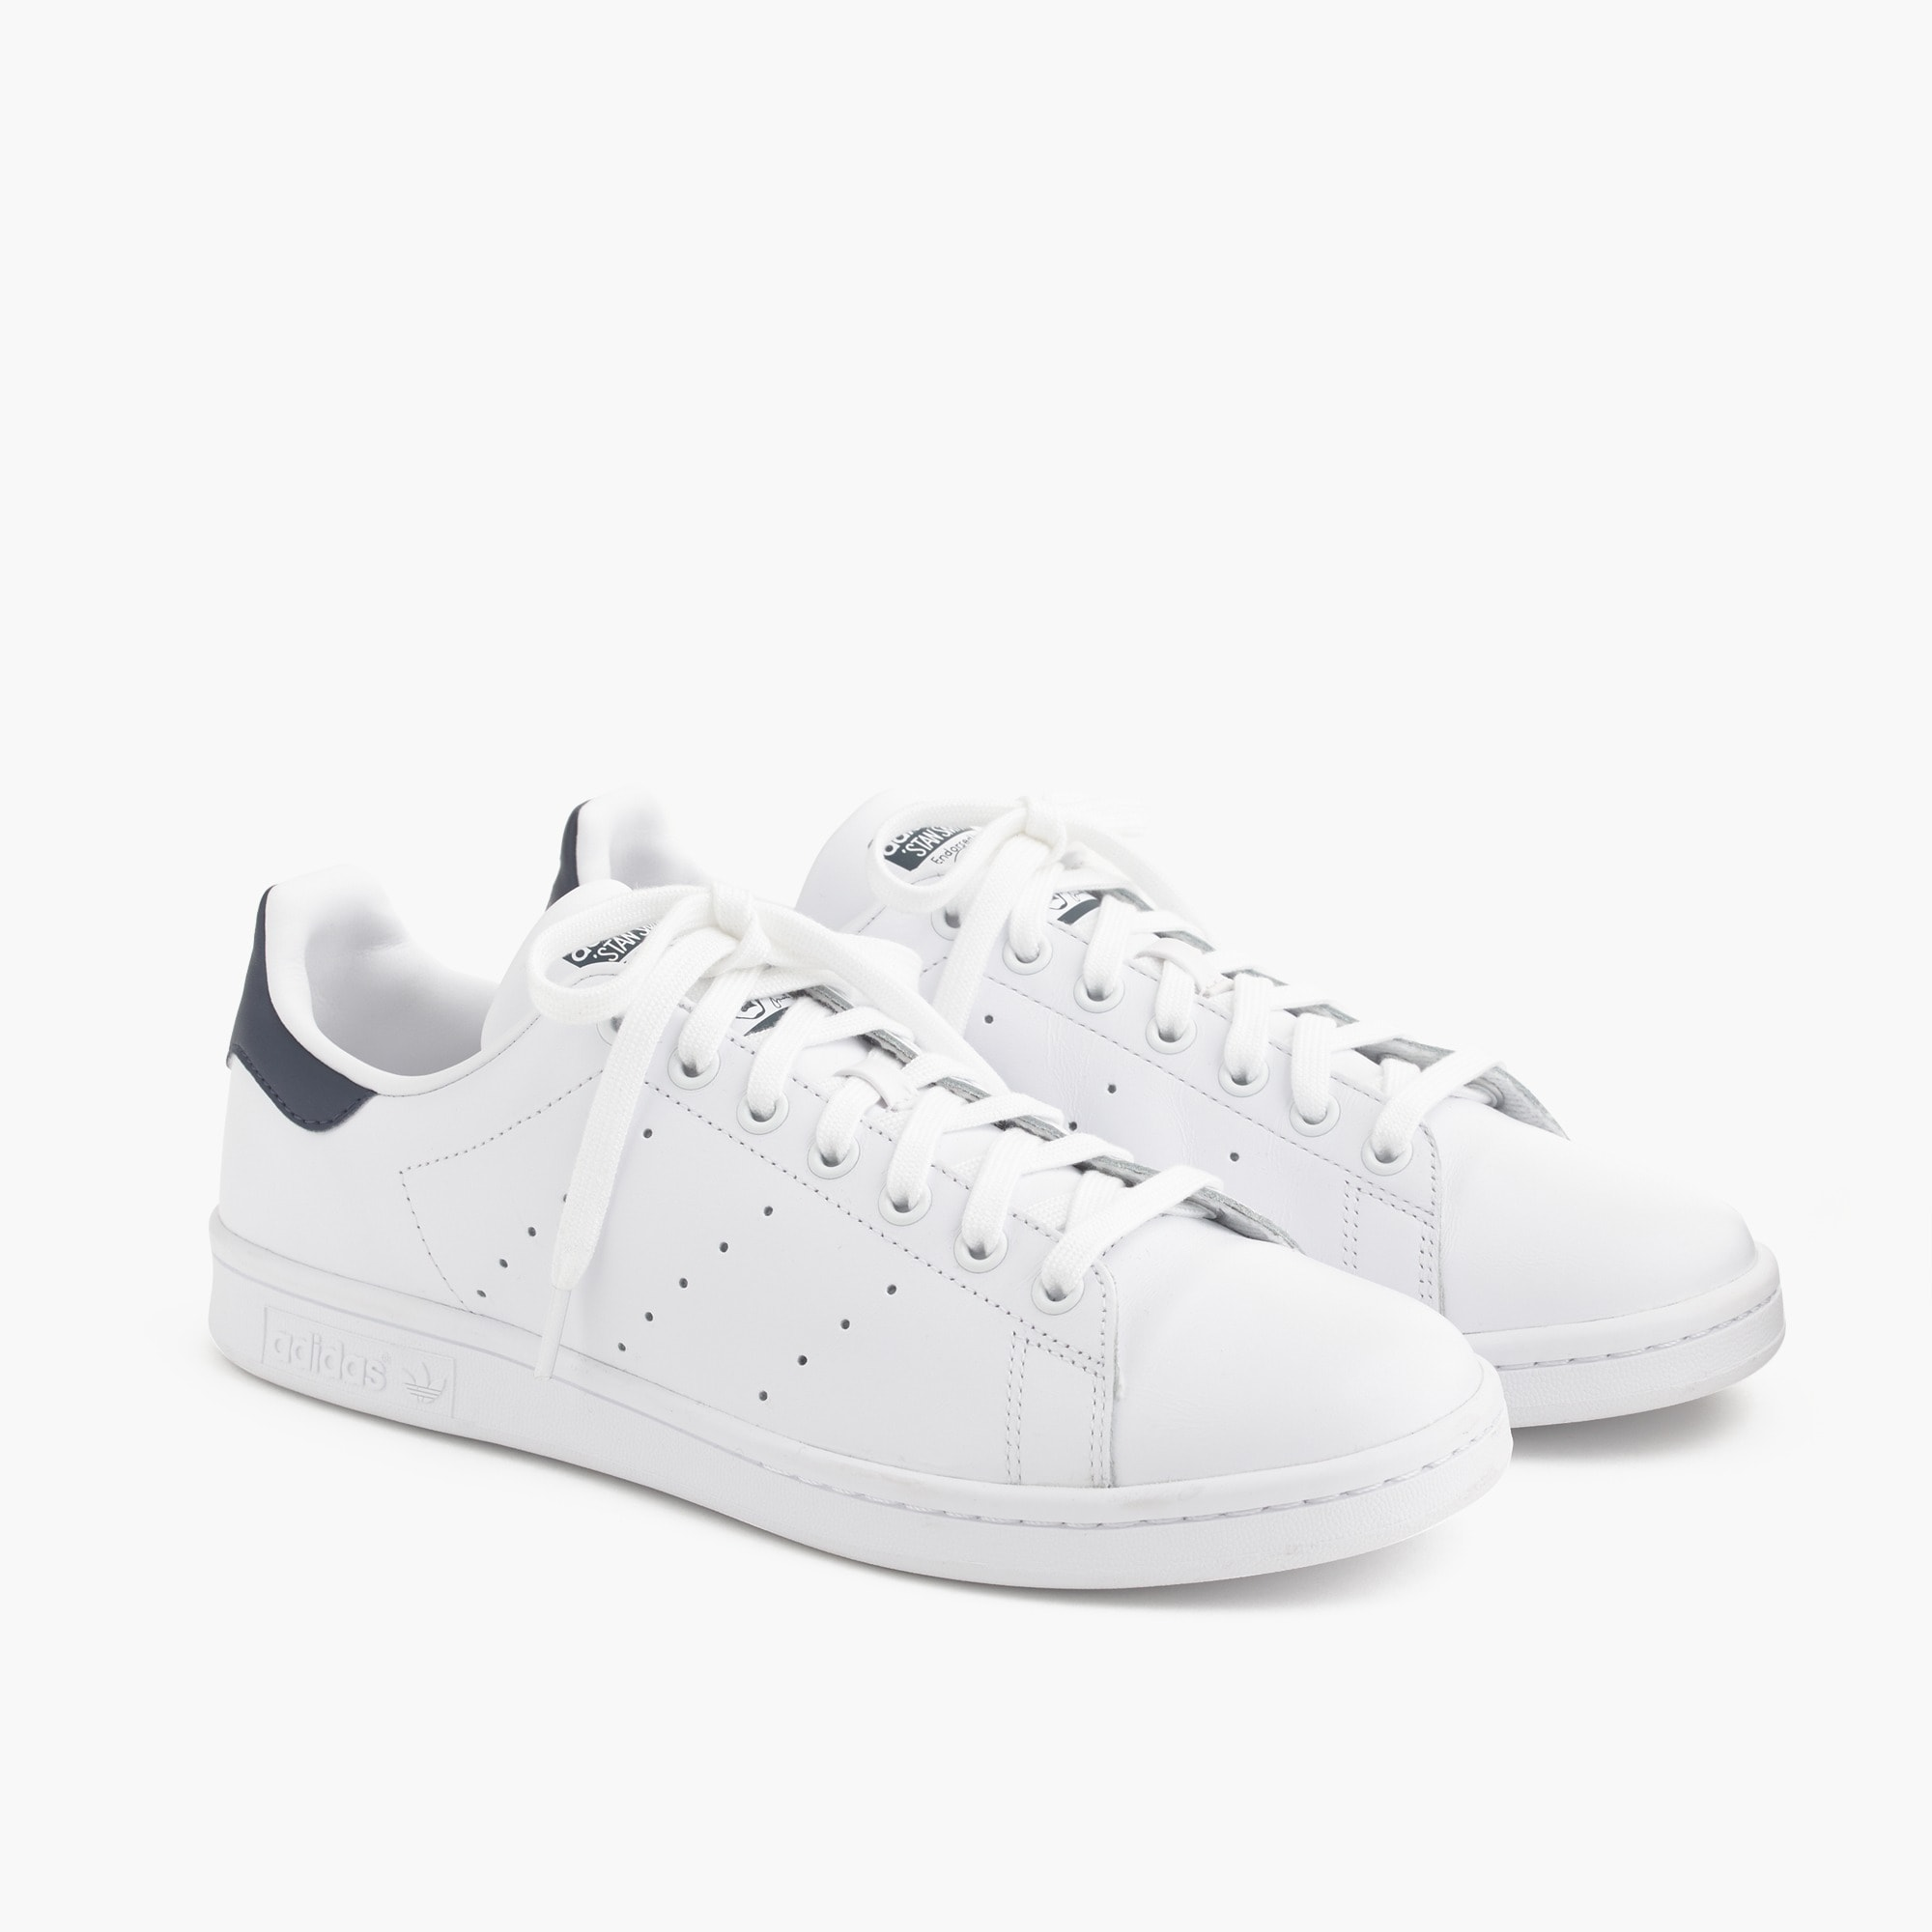 Adidas® Stan Smith™ sneakers men j.crew in good company c